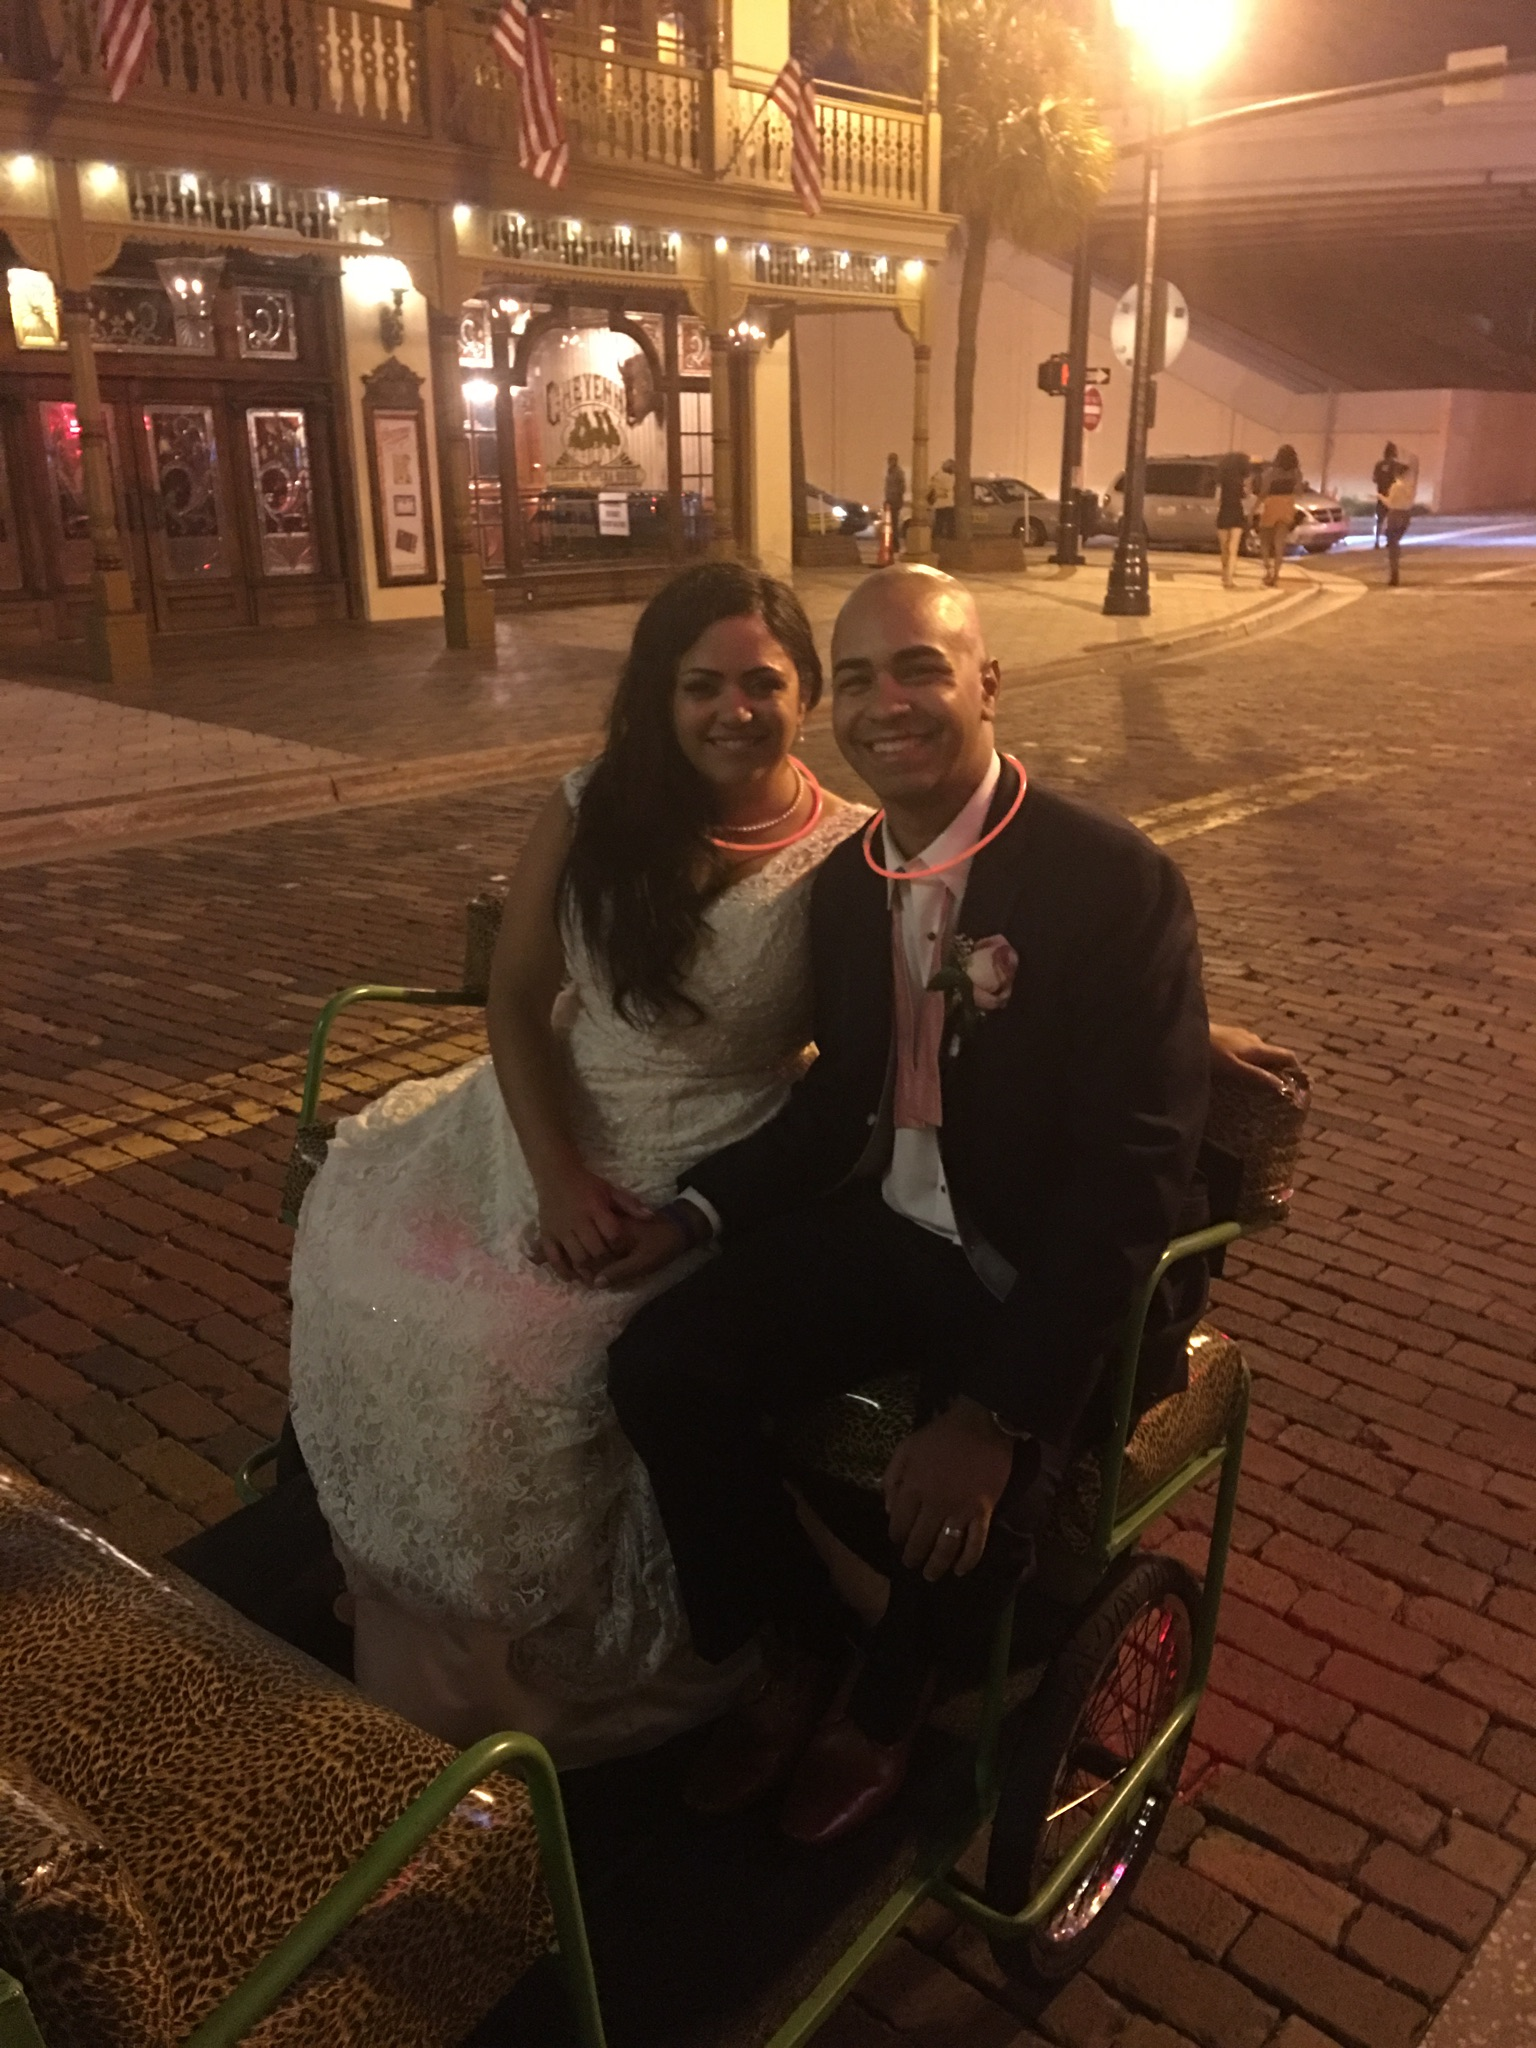 Wedding, blog, relationships, dating, marriage, the comedian, the beard and the mole